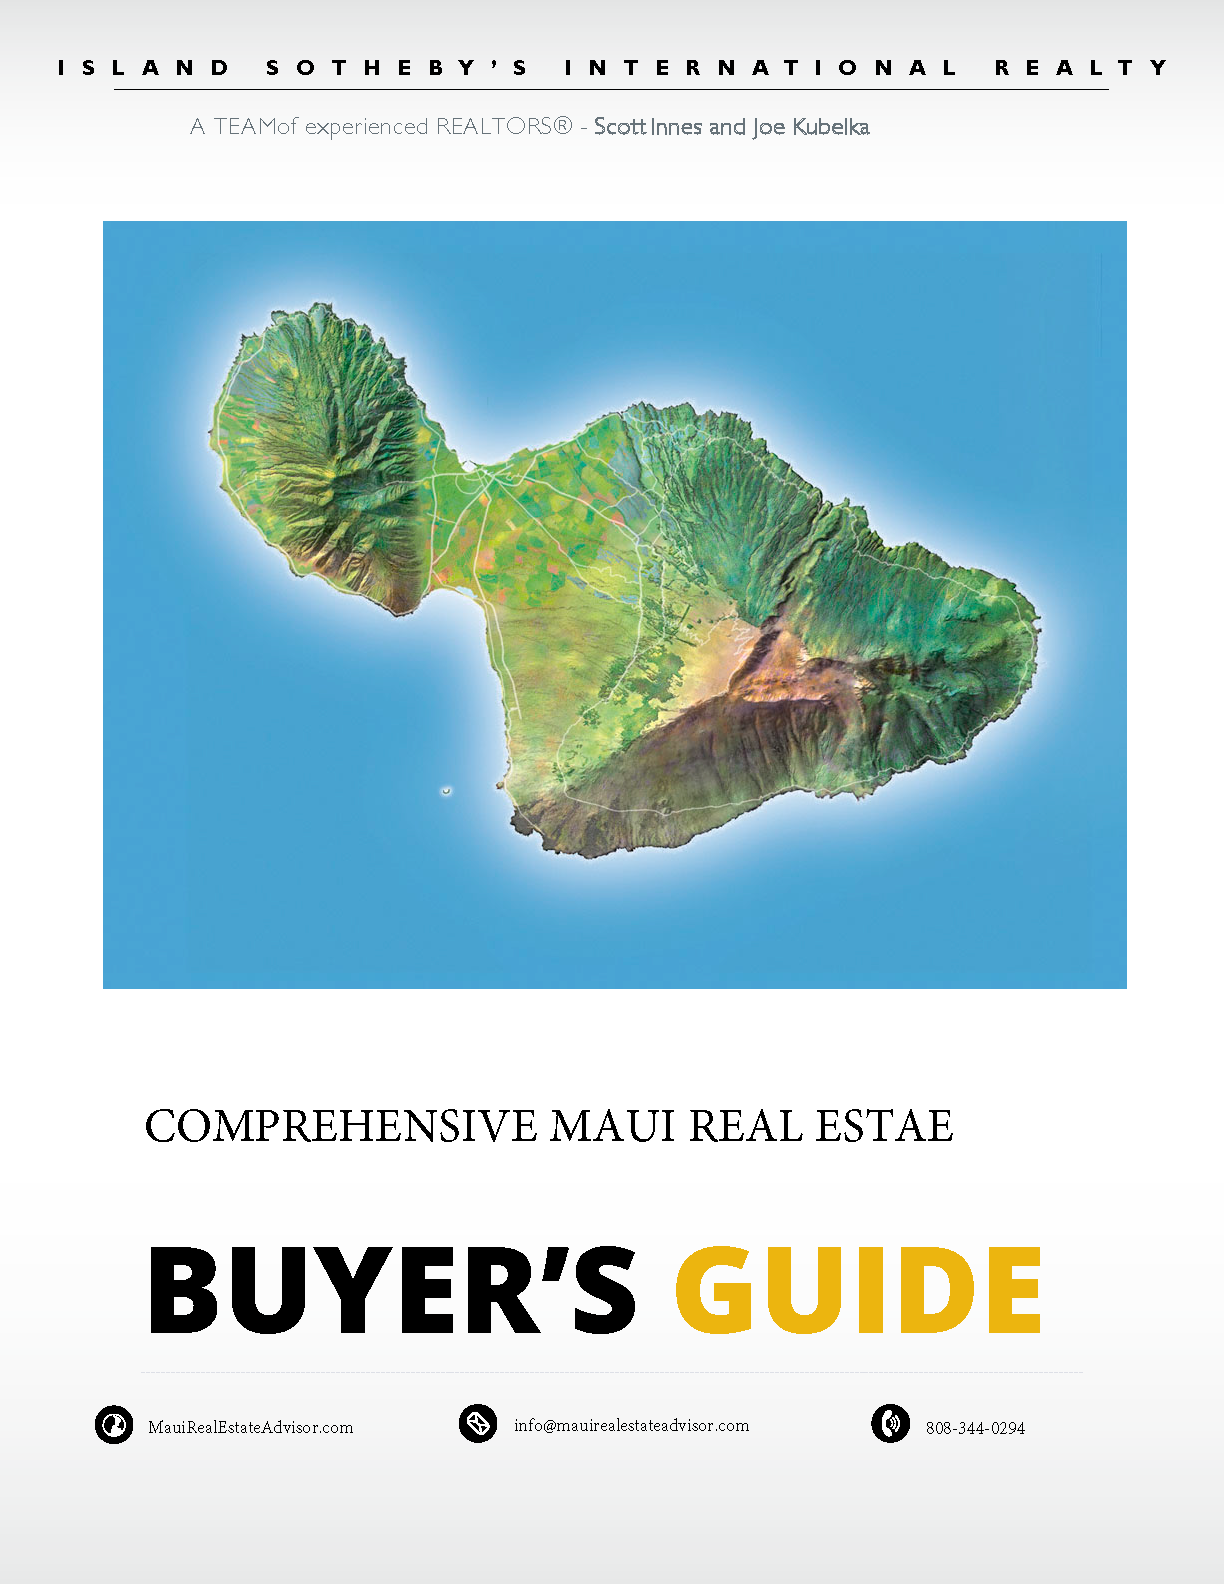 Maui Buyers Guide